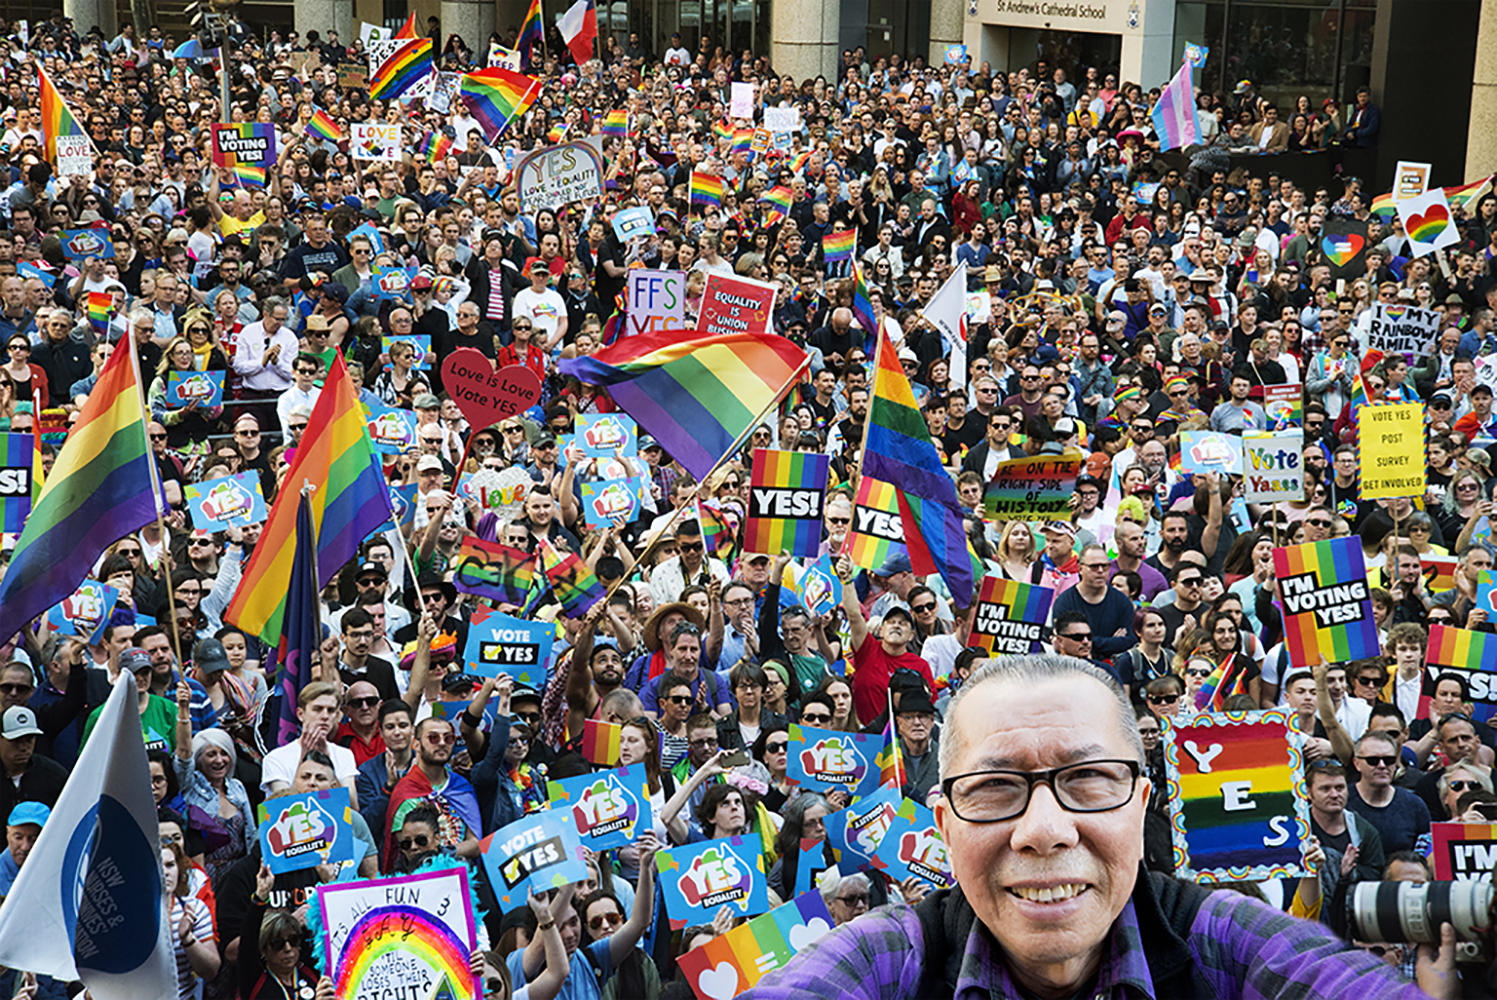 William at Marriage Equality rally, 2018.